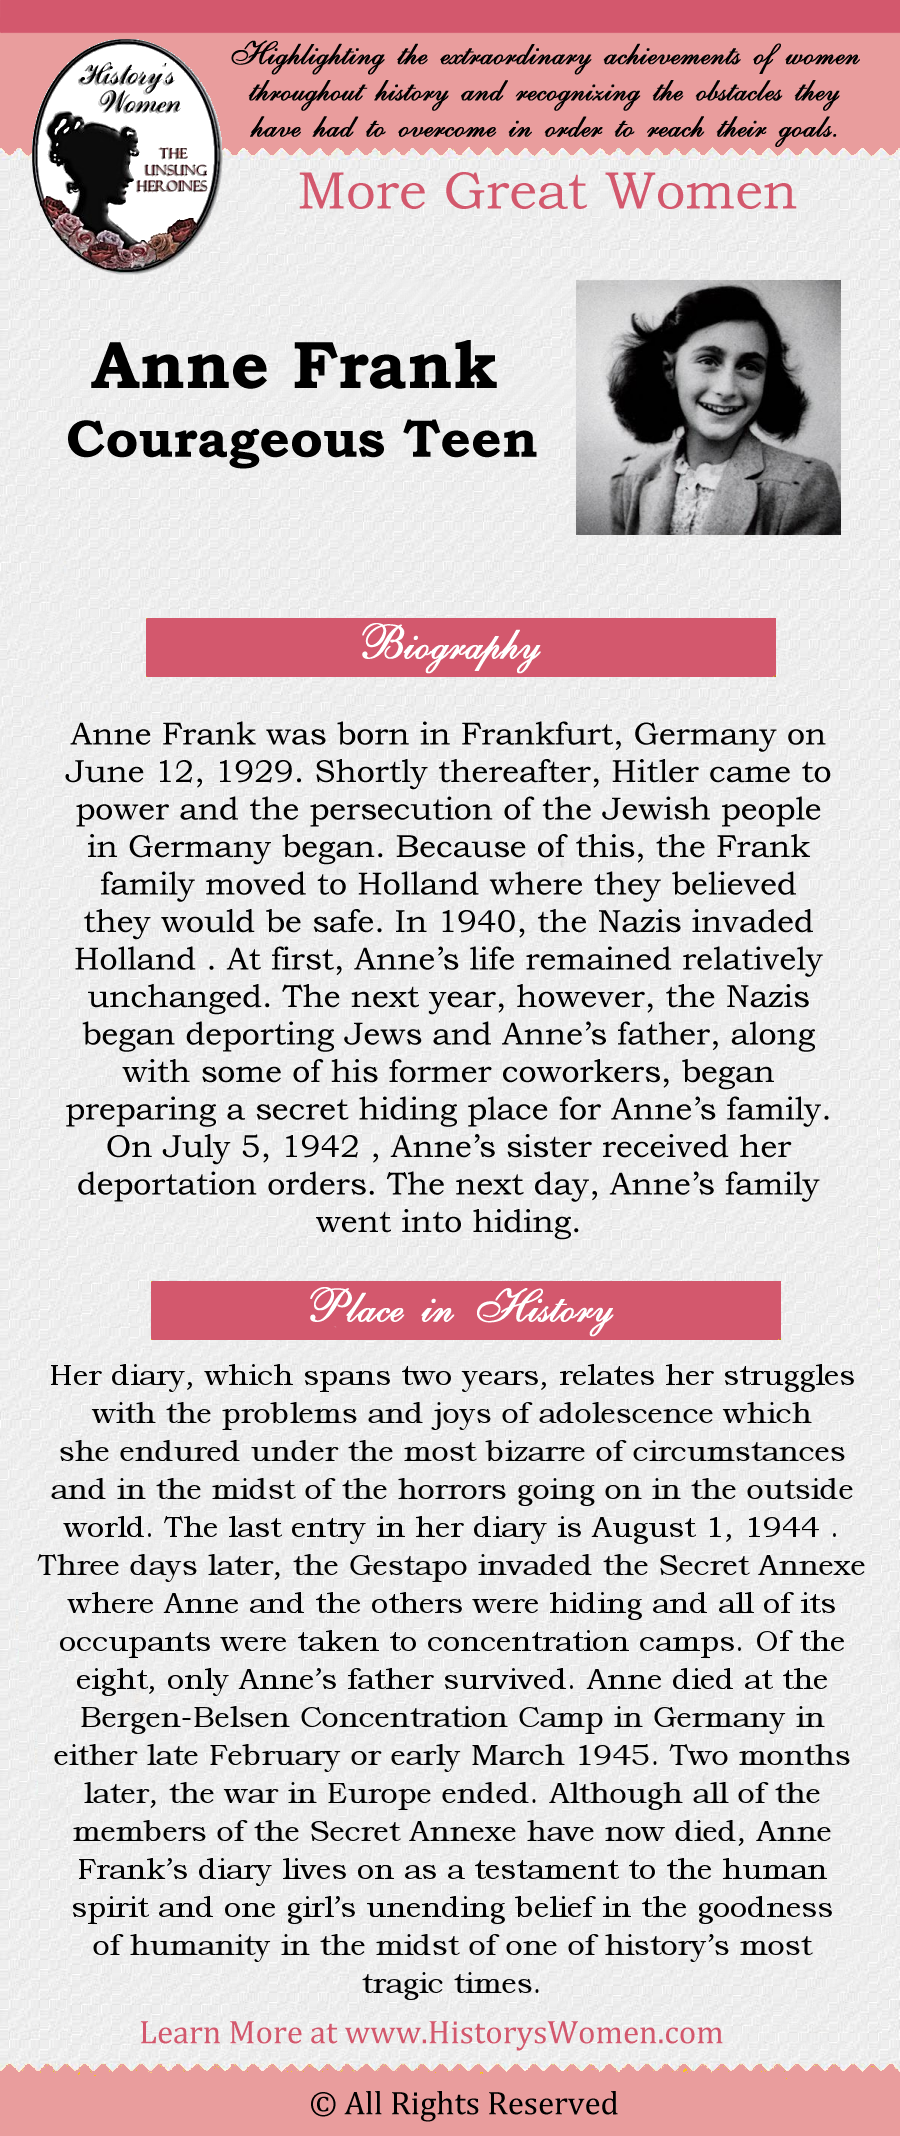 More Great Wome - Anne Frank